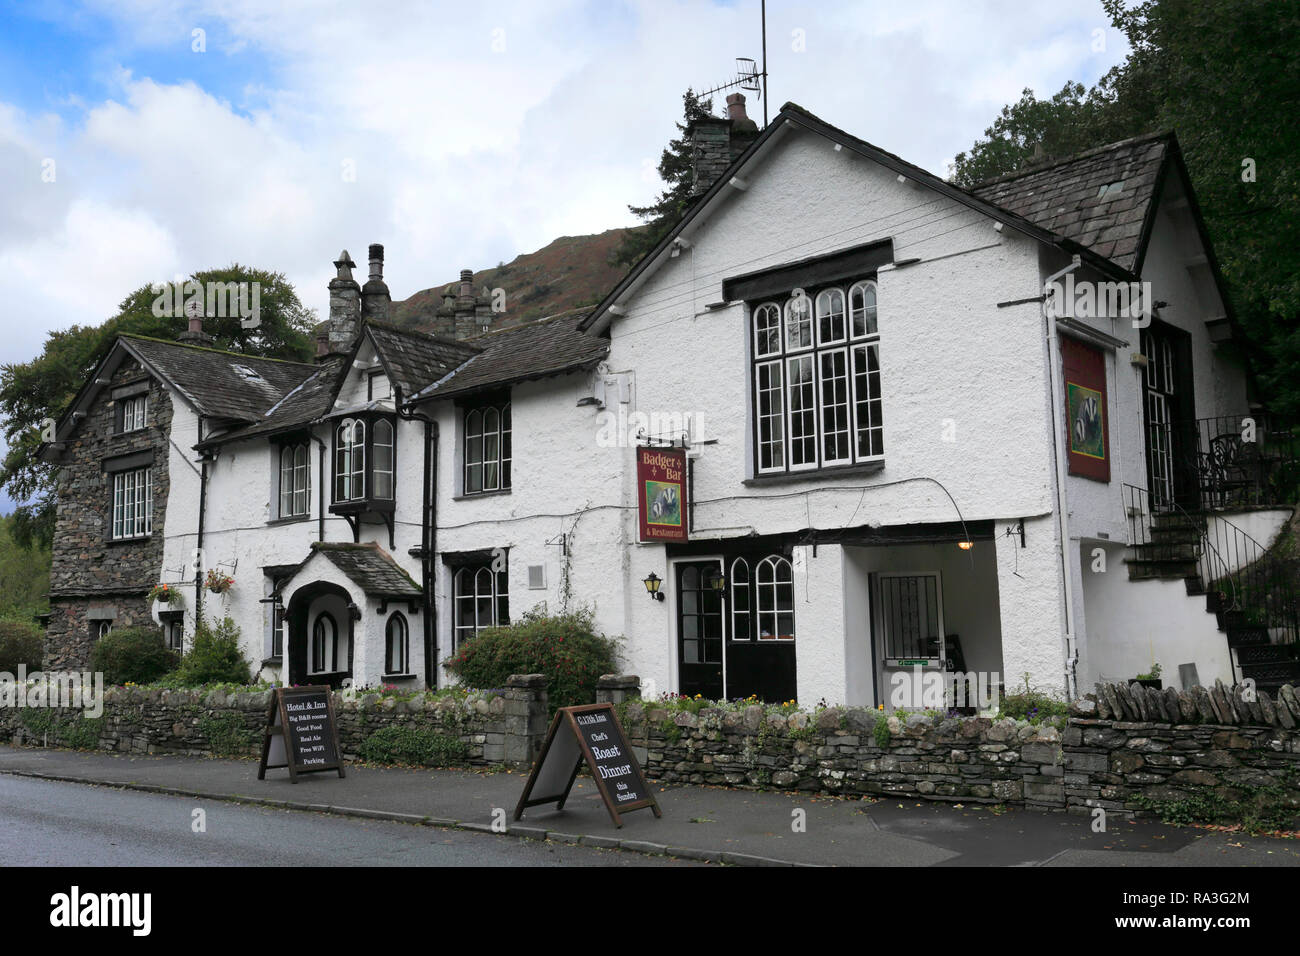 Glen Rothay Hotel and Badger Bar, Rydal village, Lake District National Park, Cumbria, England, UK - Stock Image